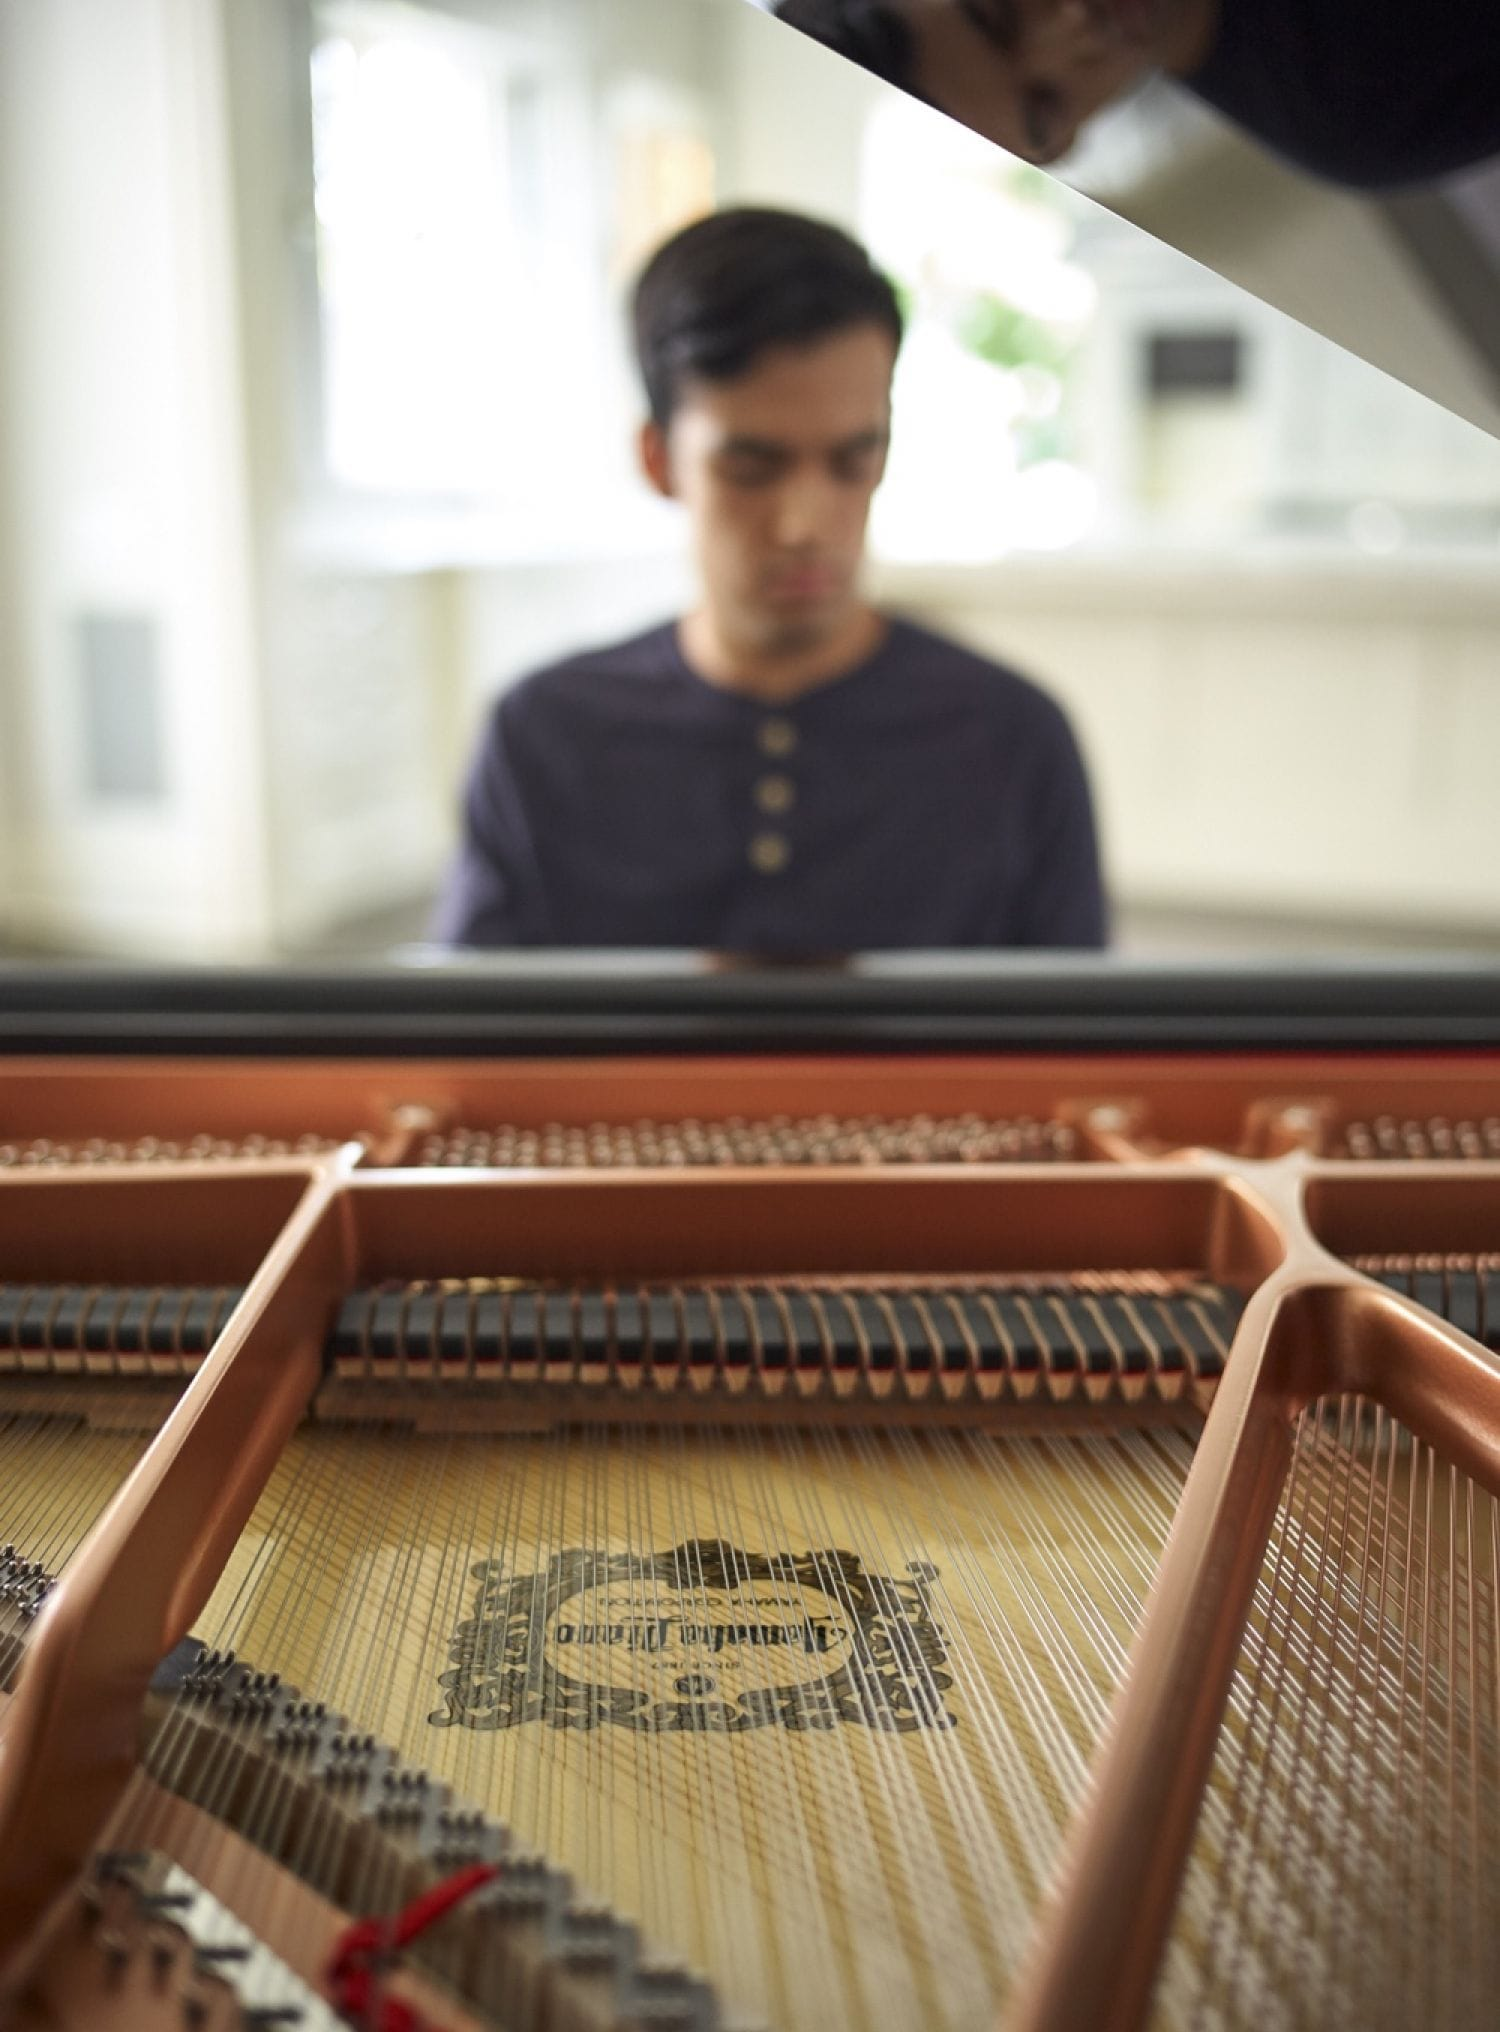 Closeup of the inner workings of the piano with a young man seated at the far end focused on playing.